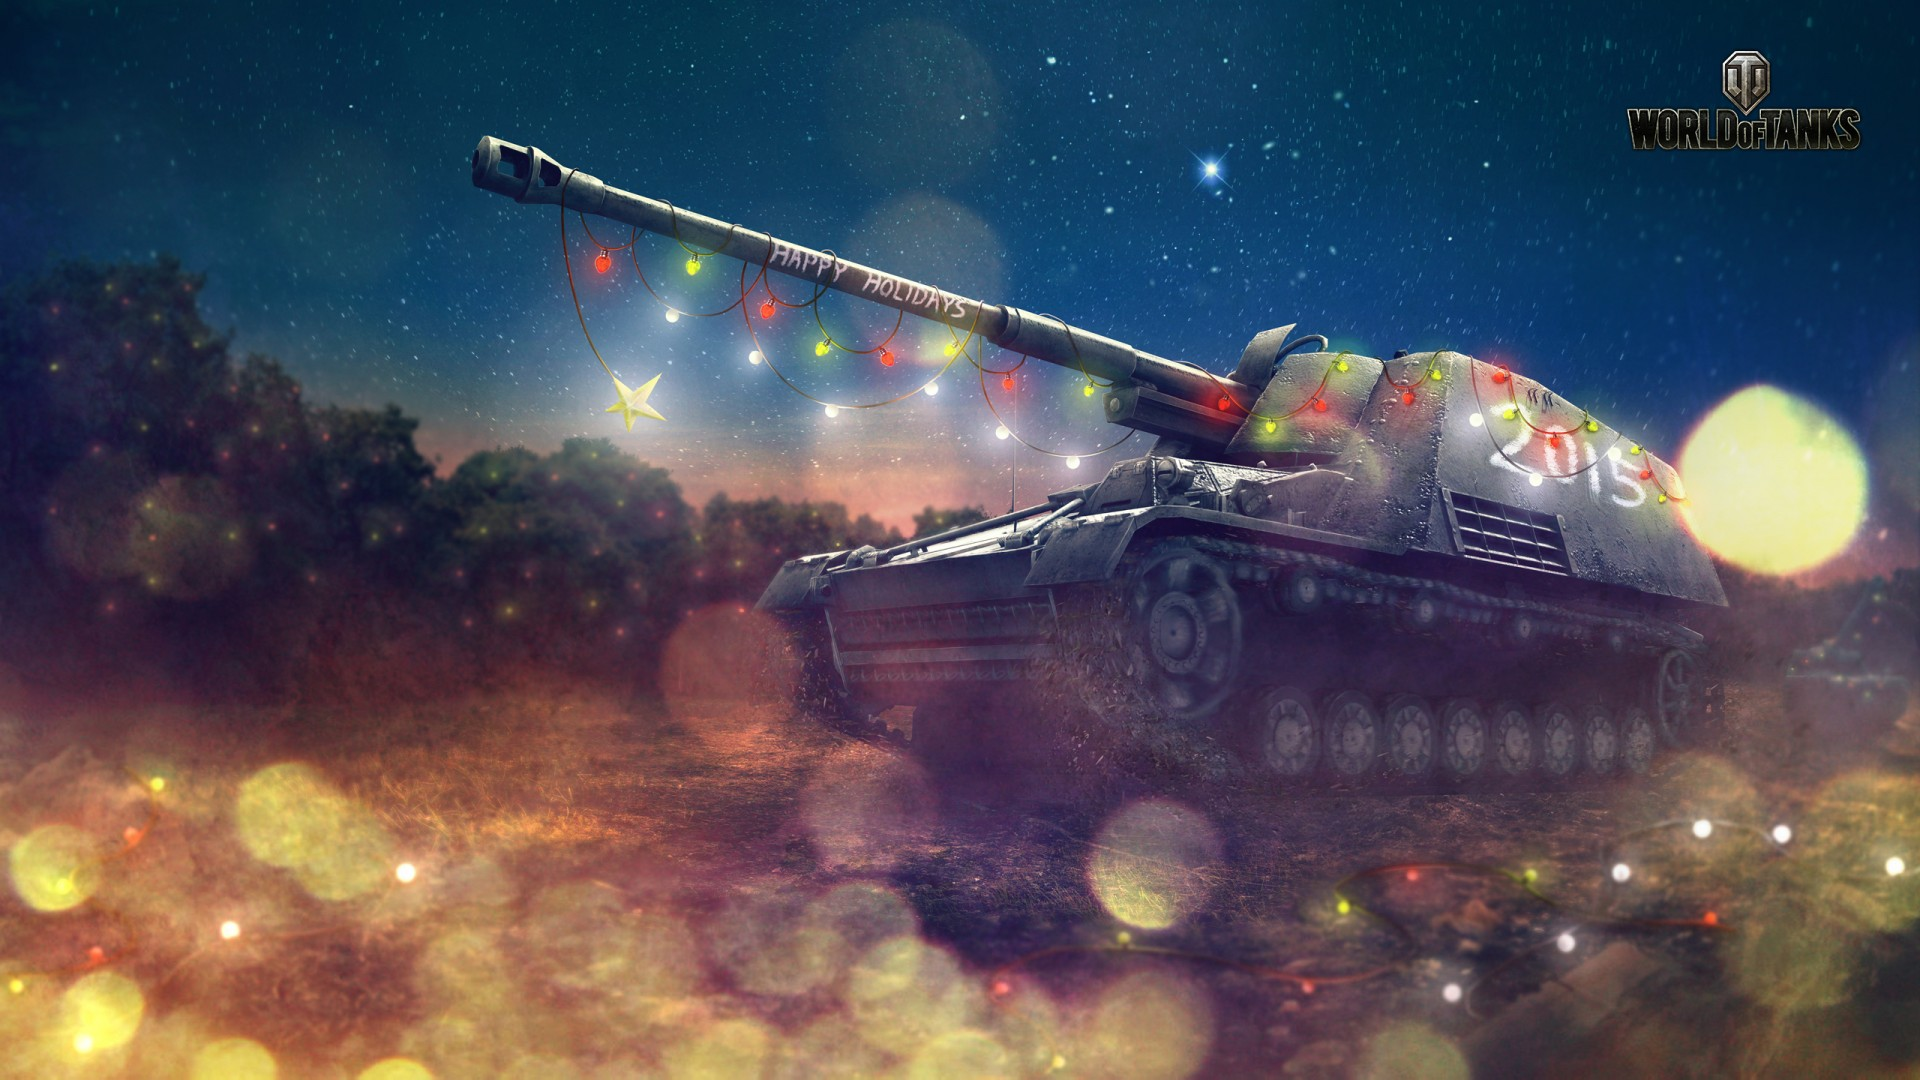 High Quality 3d Animated Video Wallpapers World Of Tanks Holidays Wallpapers Hd Wallpapers Id 15844